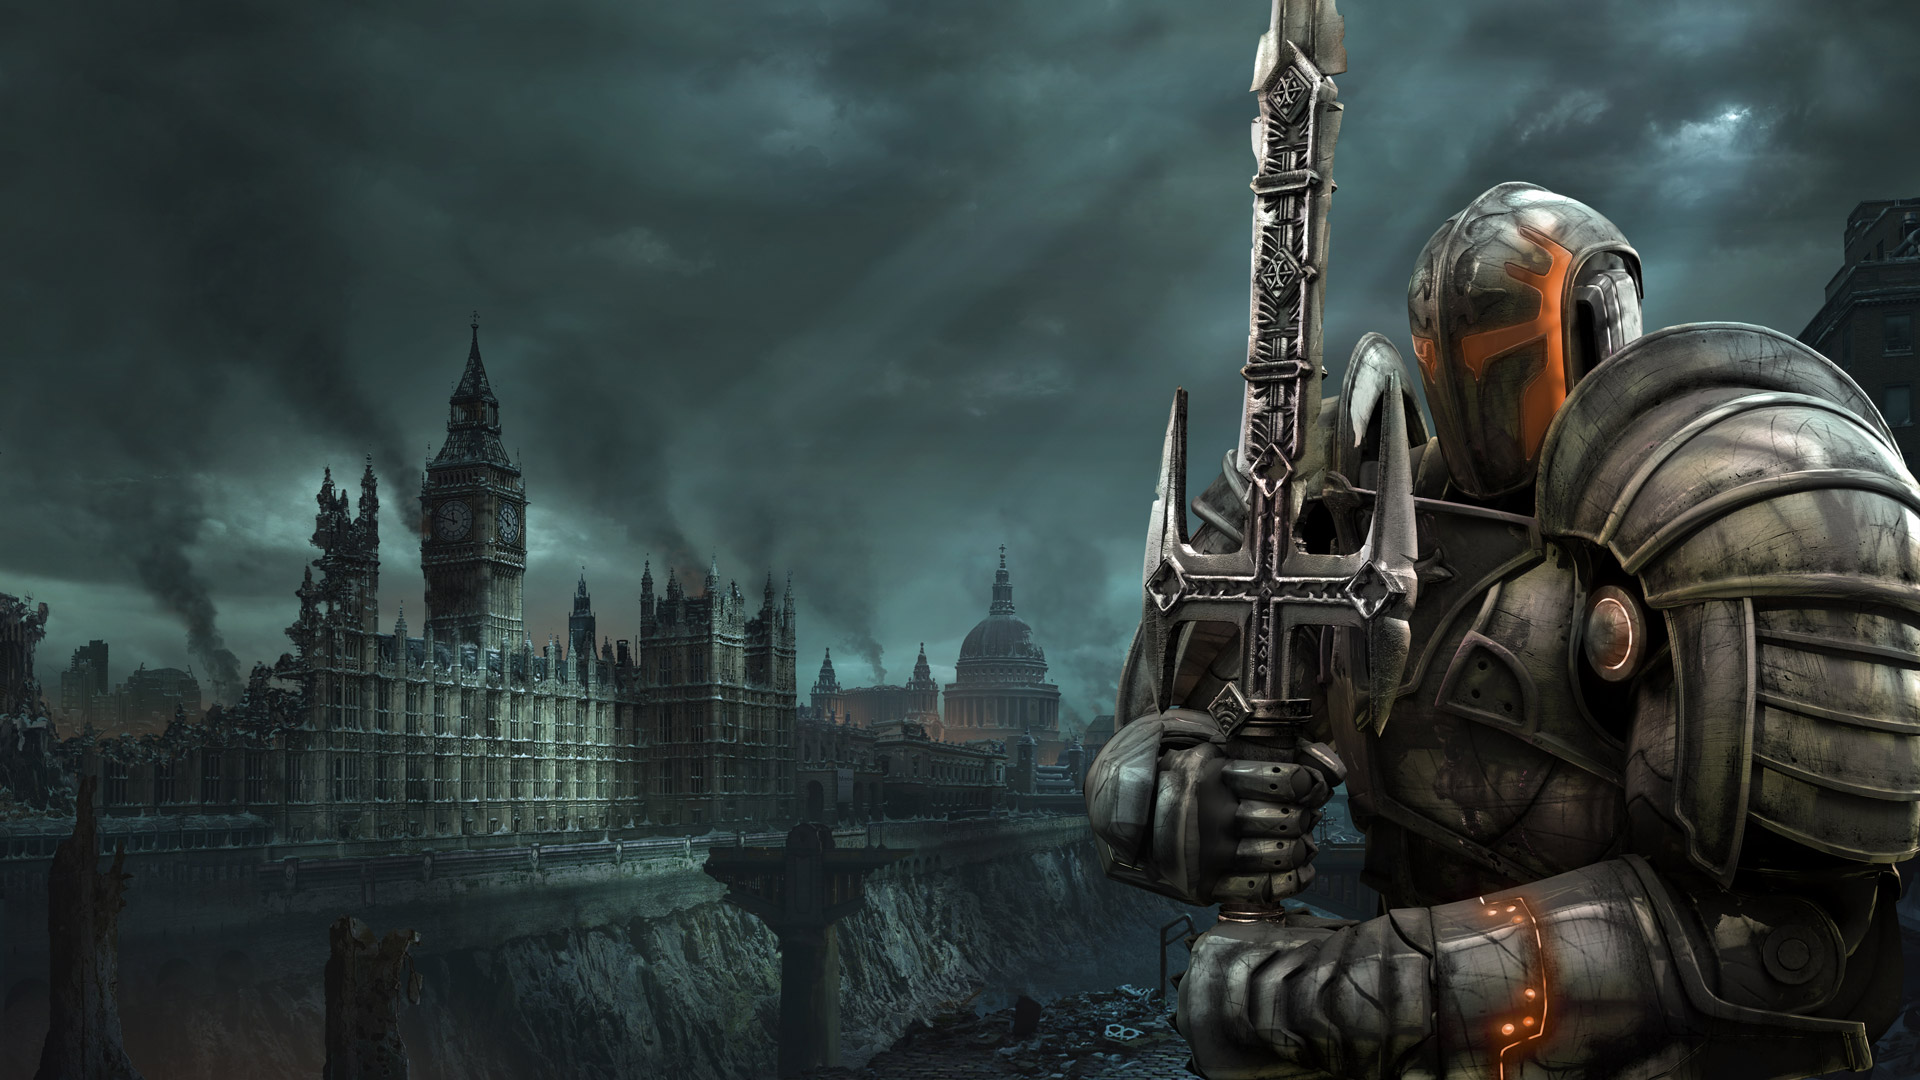 Free Hellgate: London Wallpaper in 1920x1080